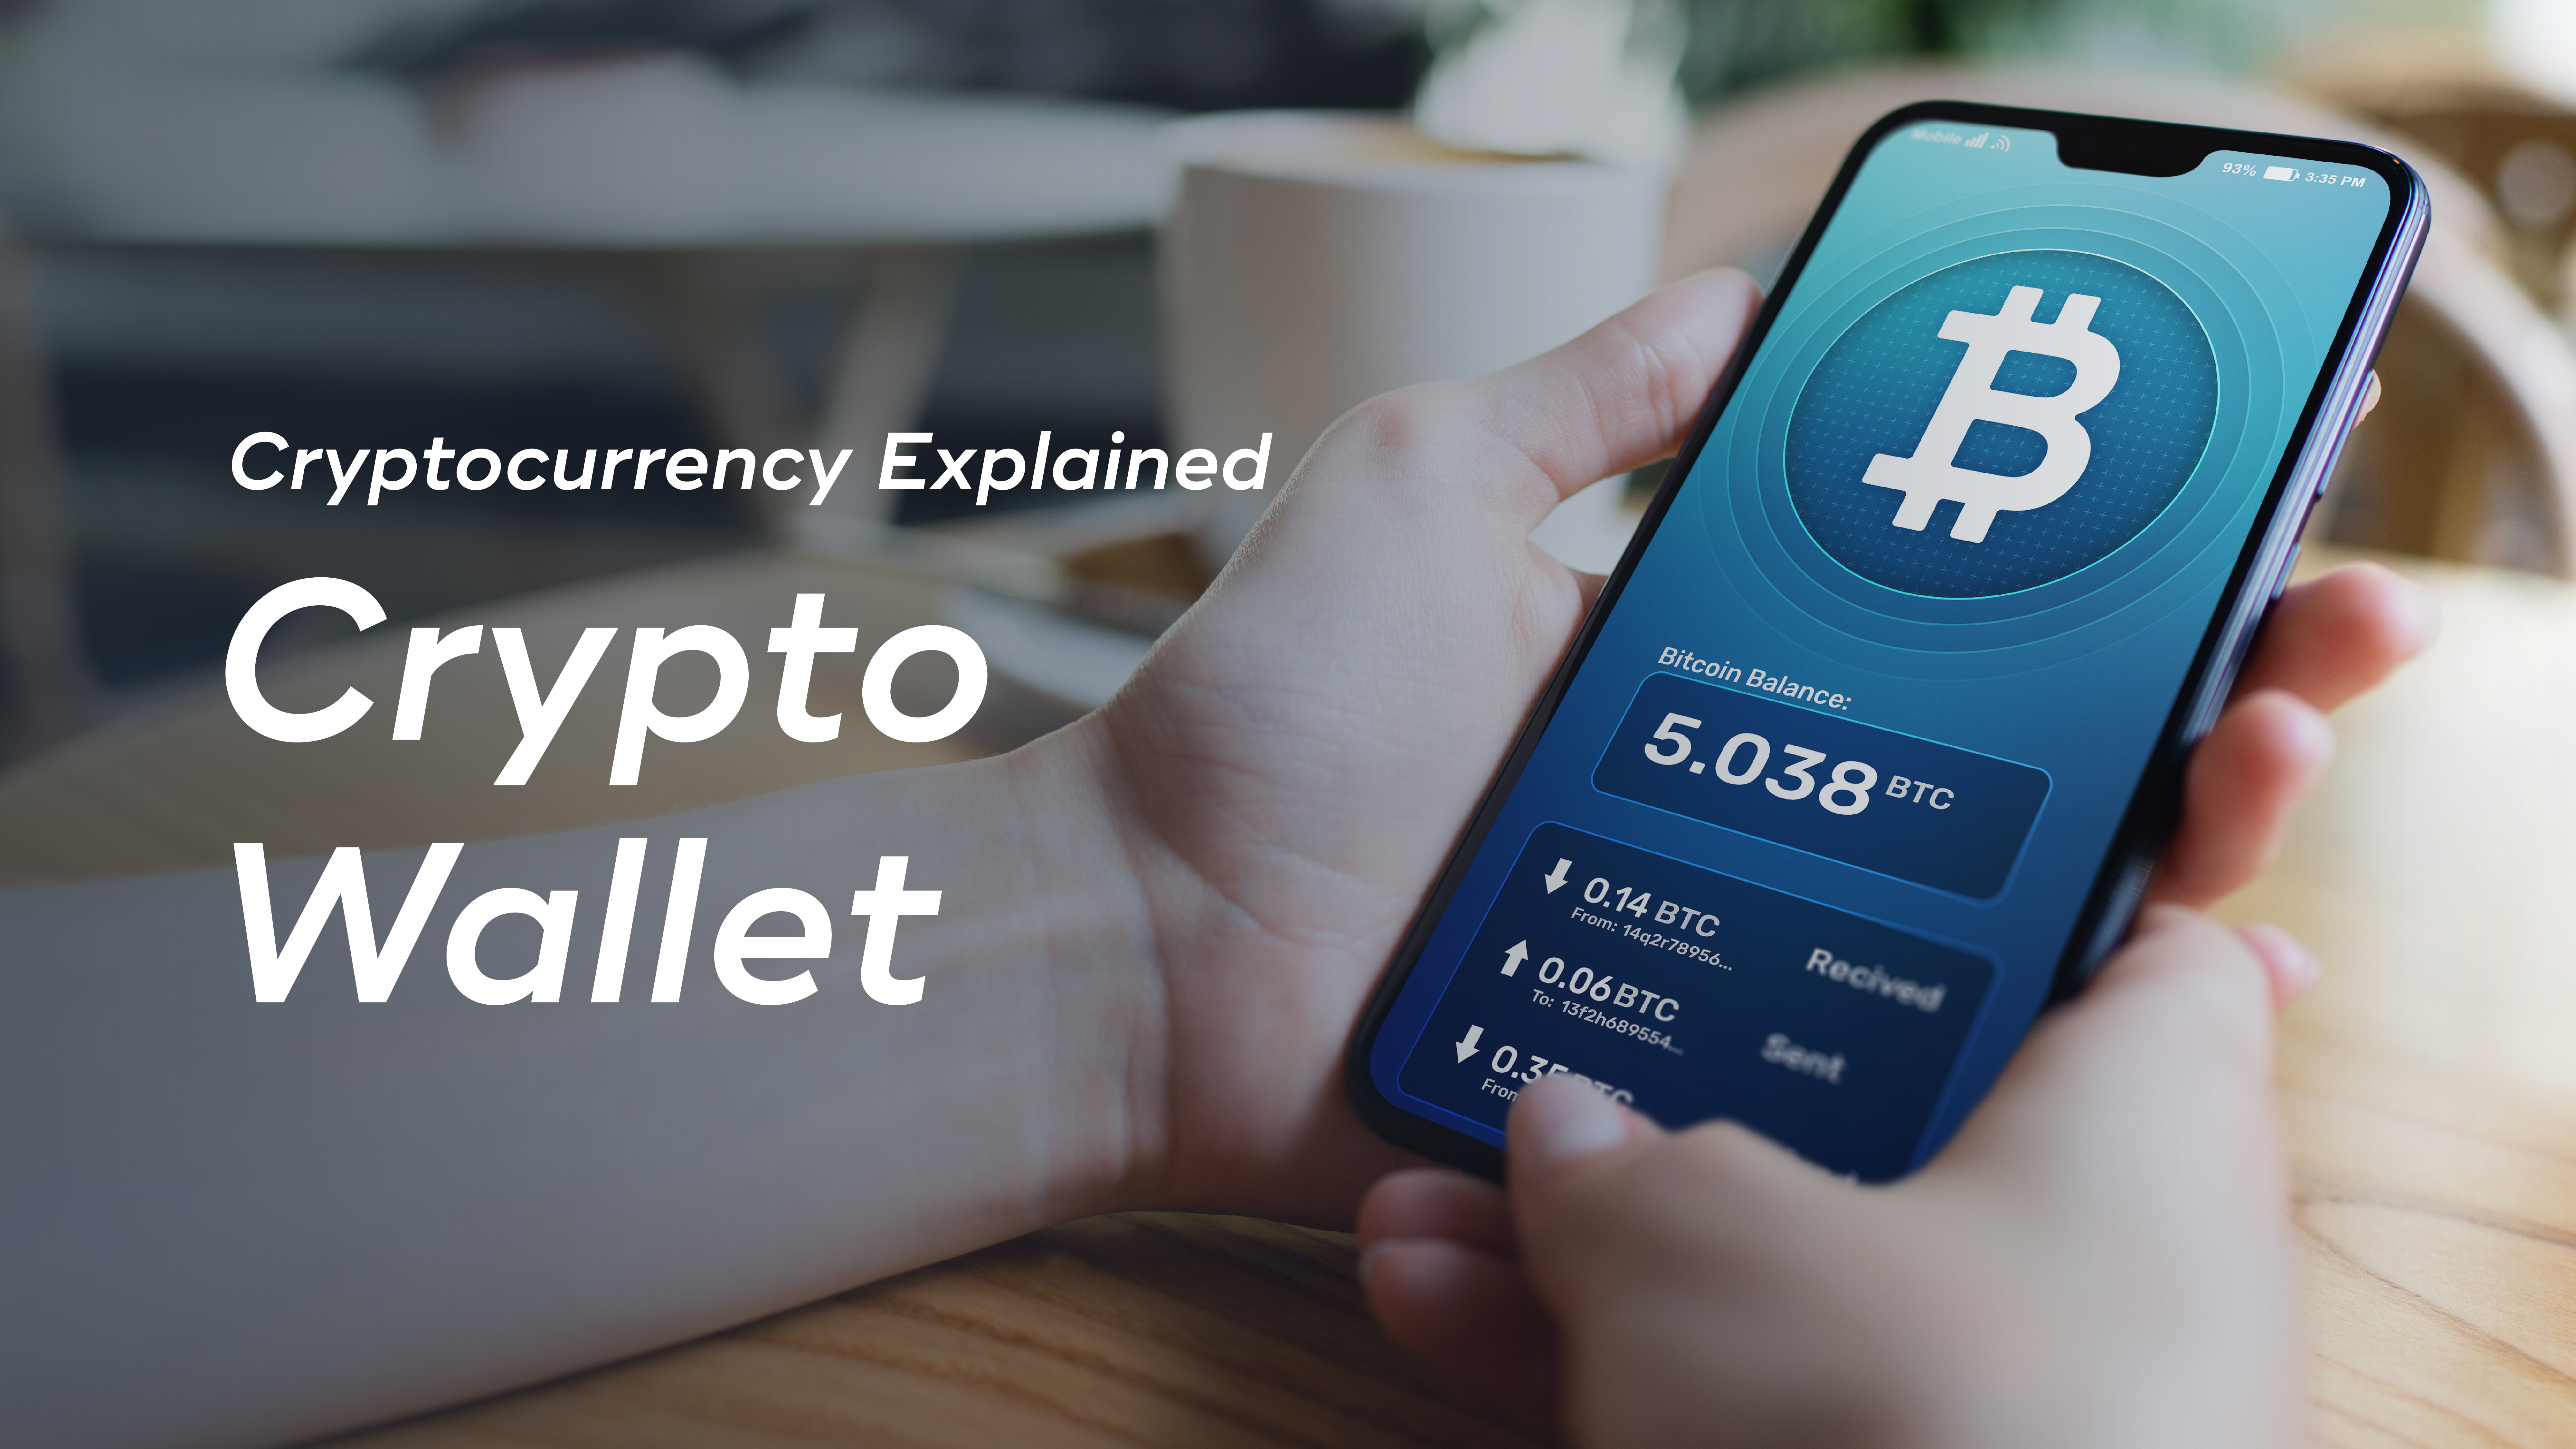 Cover Image for What is a Crypto Wallet and How Do You Use One? CoinFlip Explains